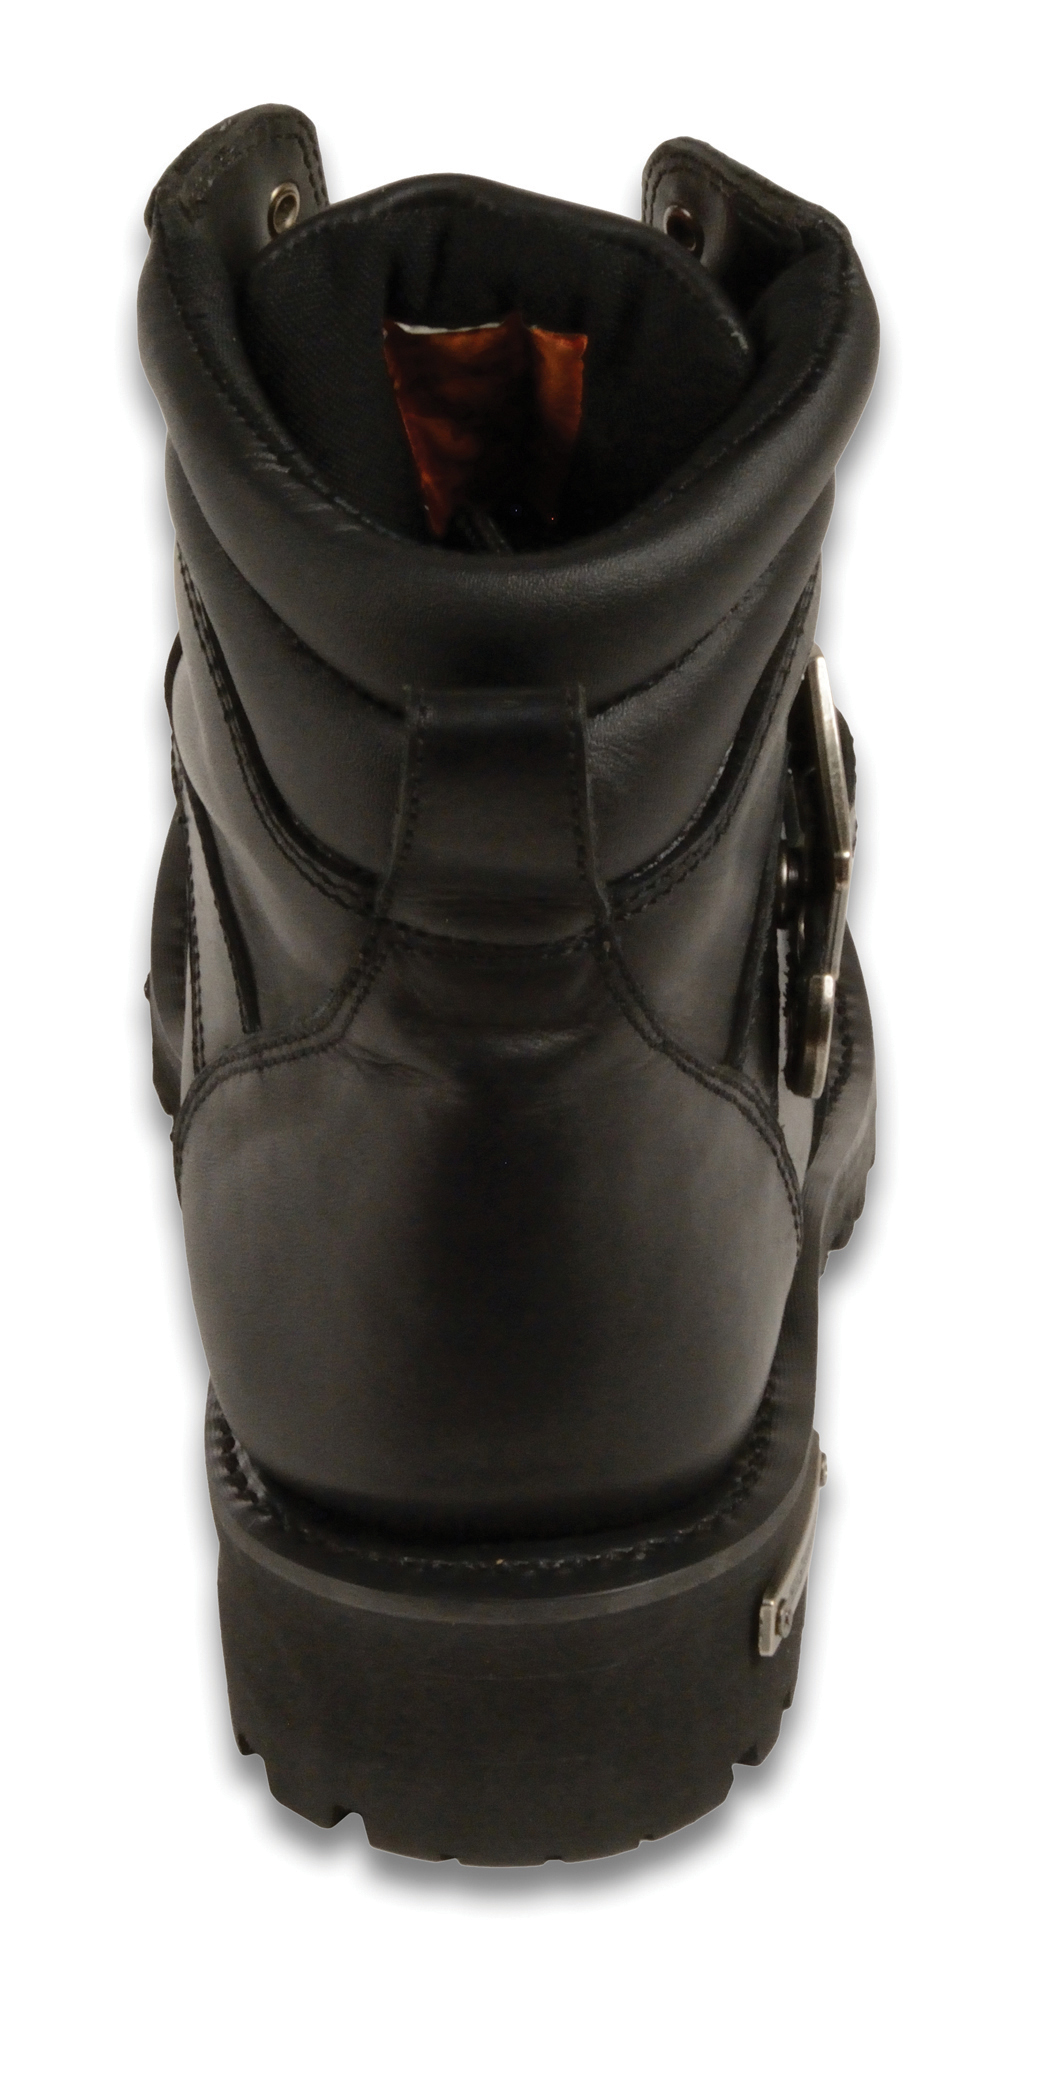 Full Face Cruiser Helmets >> MEN'S MOTORBIKE BOOTS REAL LEATHER 6 INCH SIDE BUCKLE BOOT - Bikers Gear Online USA